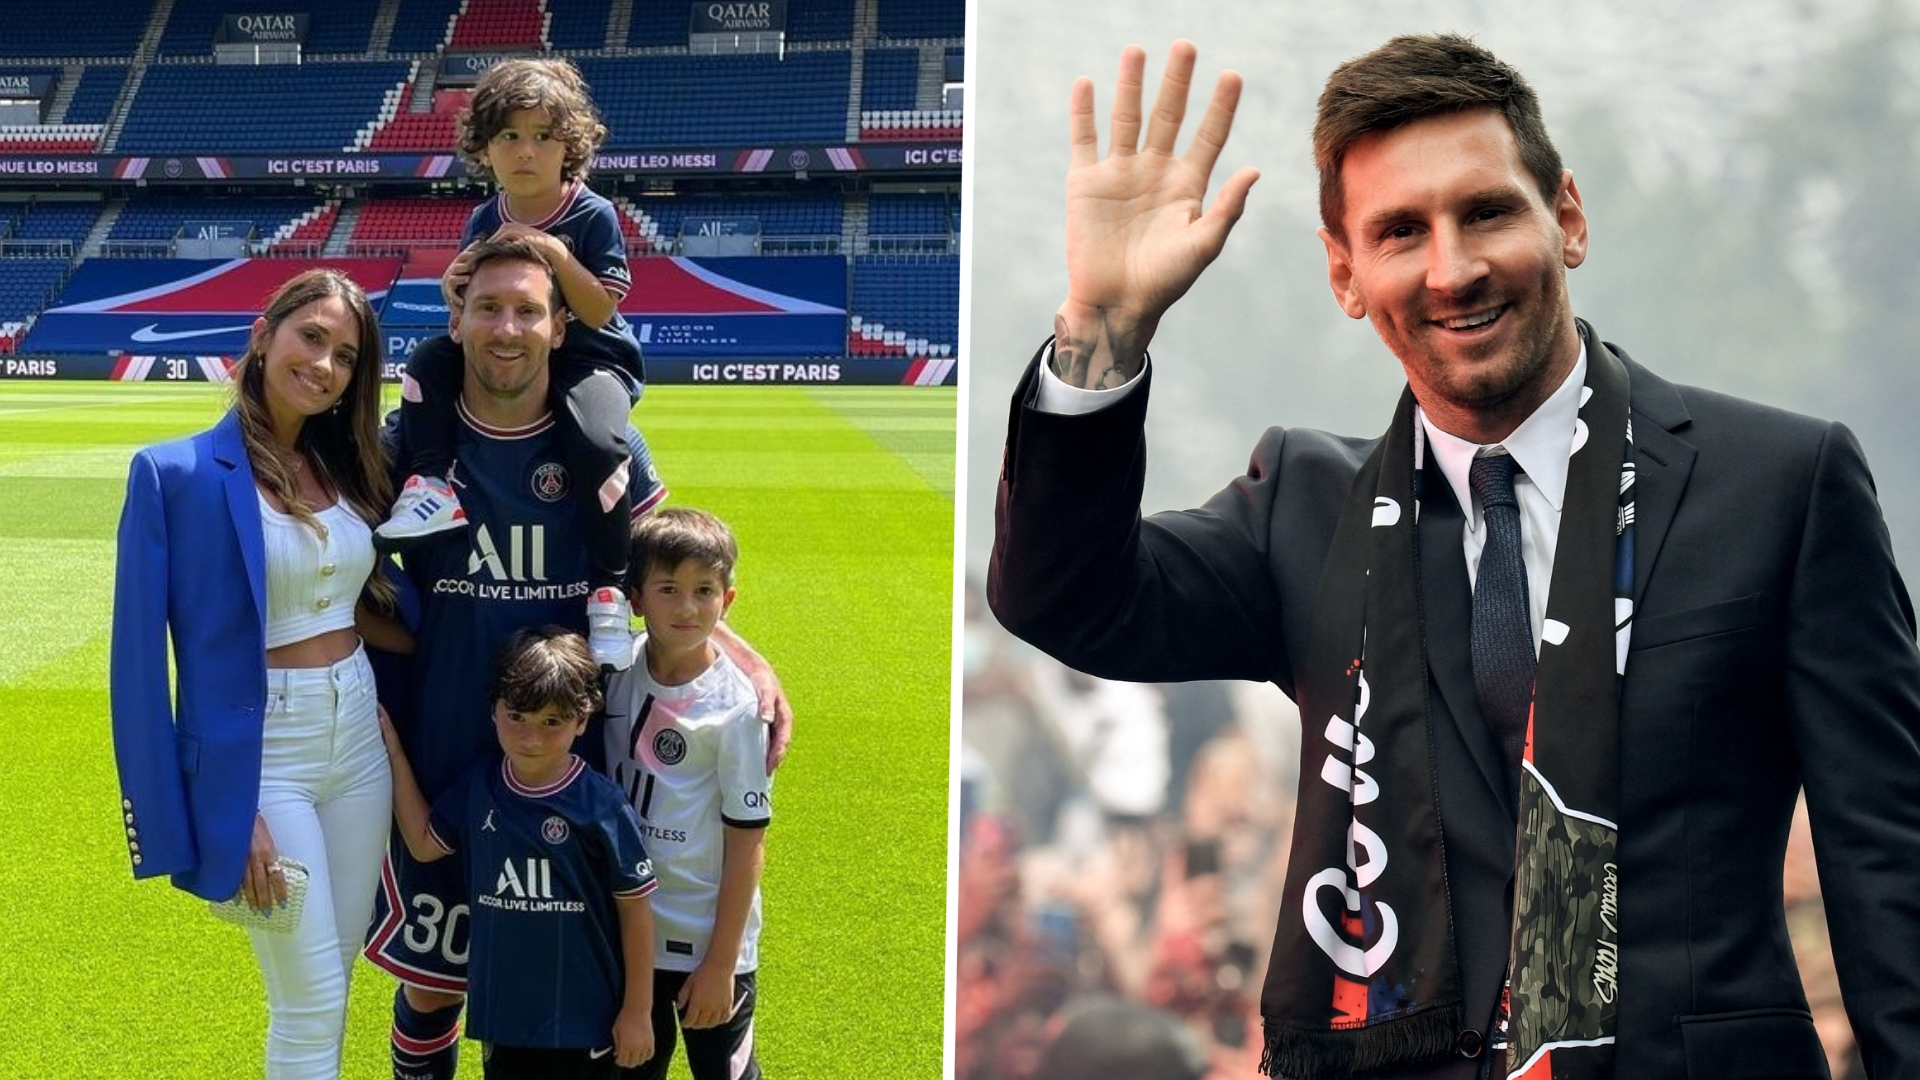 'Together we will continue writing our history' - Messi's wife Antonela Rocuzzo looking forward to 'new chapter' at PSG